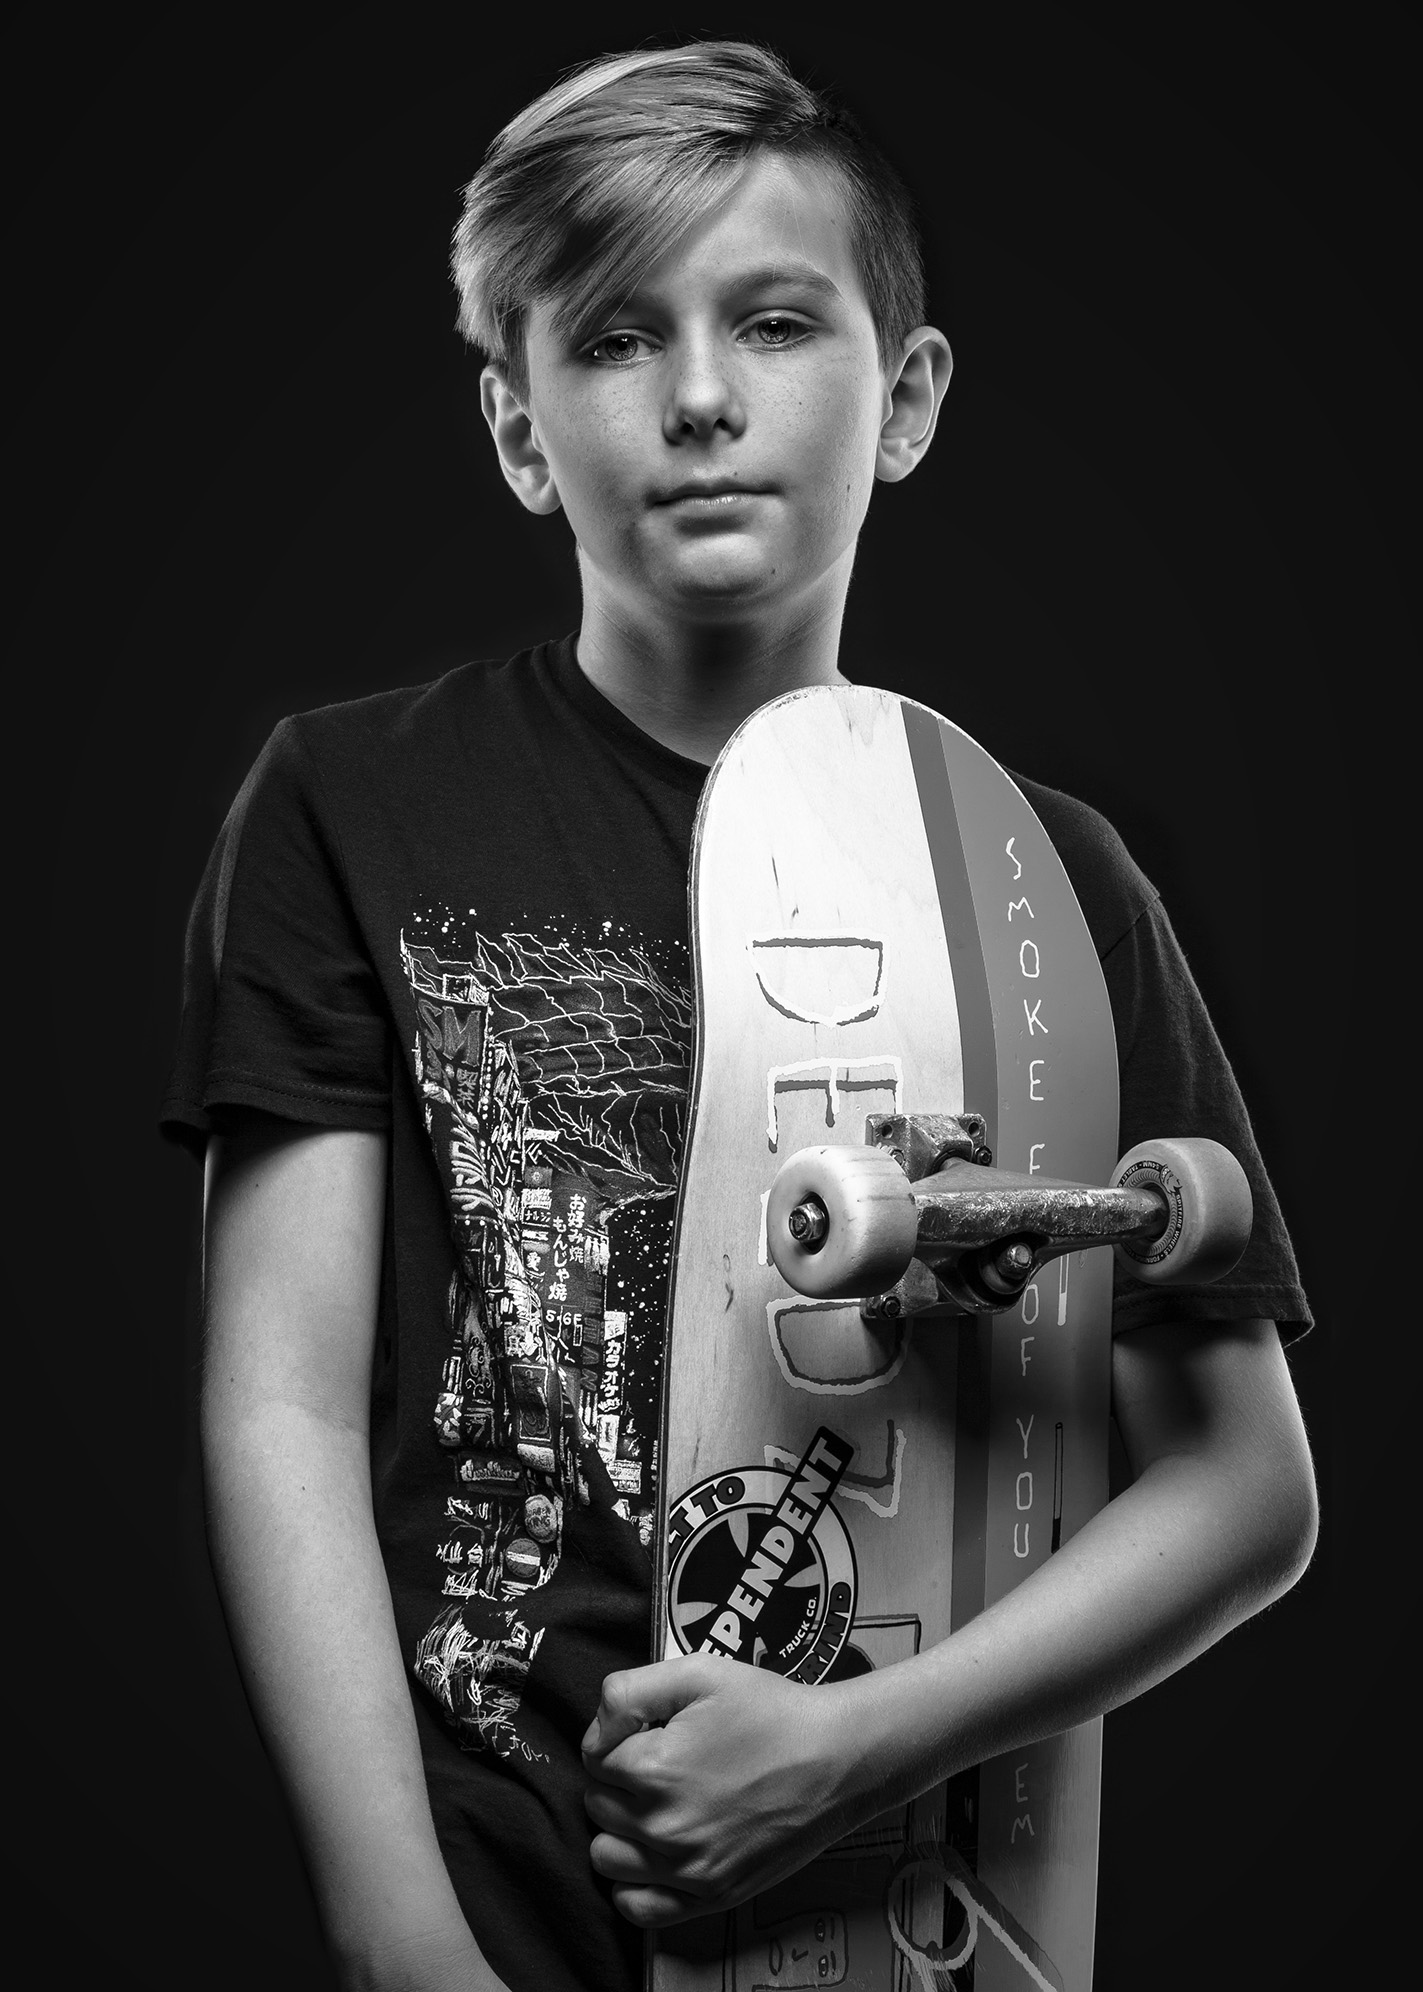 kid Skateboarder portrait